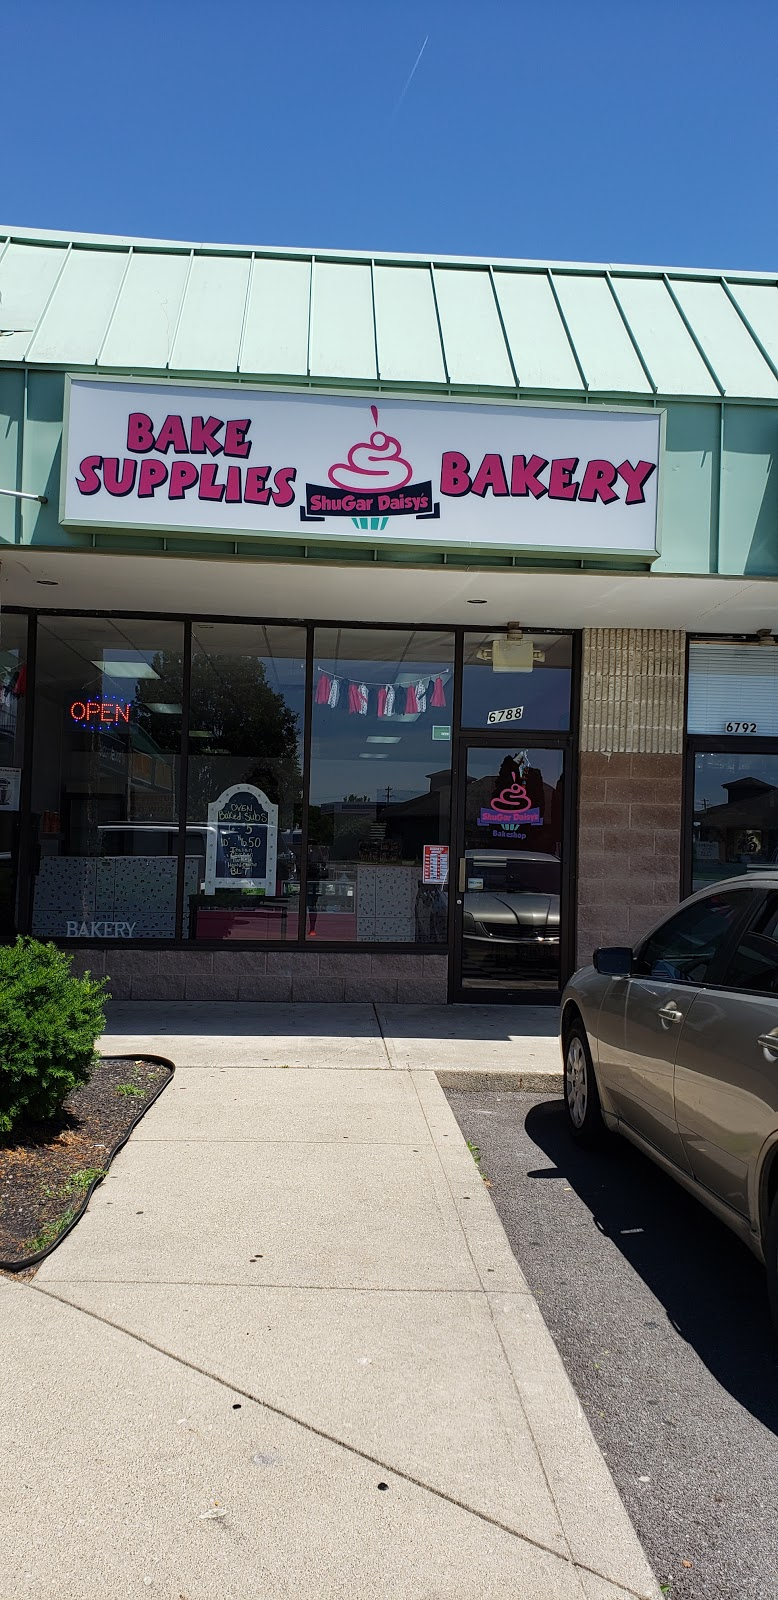 ShuGar Daisys Bakeshop   bakery   6788 Refugee Rd, Canal Winchester, OH 43110, USA   6148288815 OR +1 614-828-8815